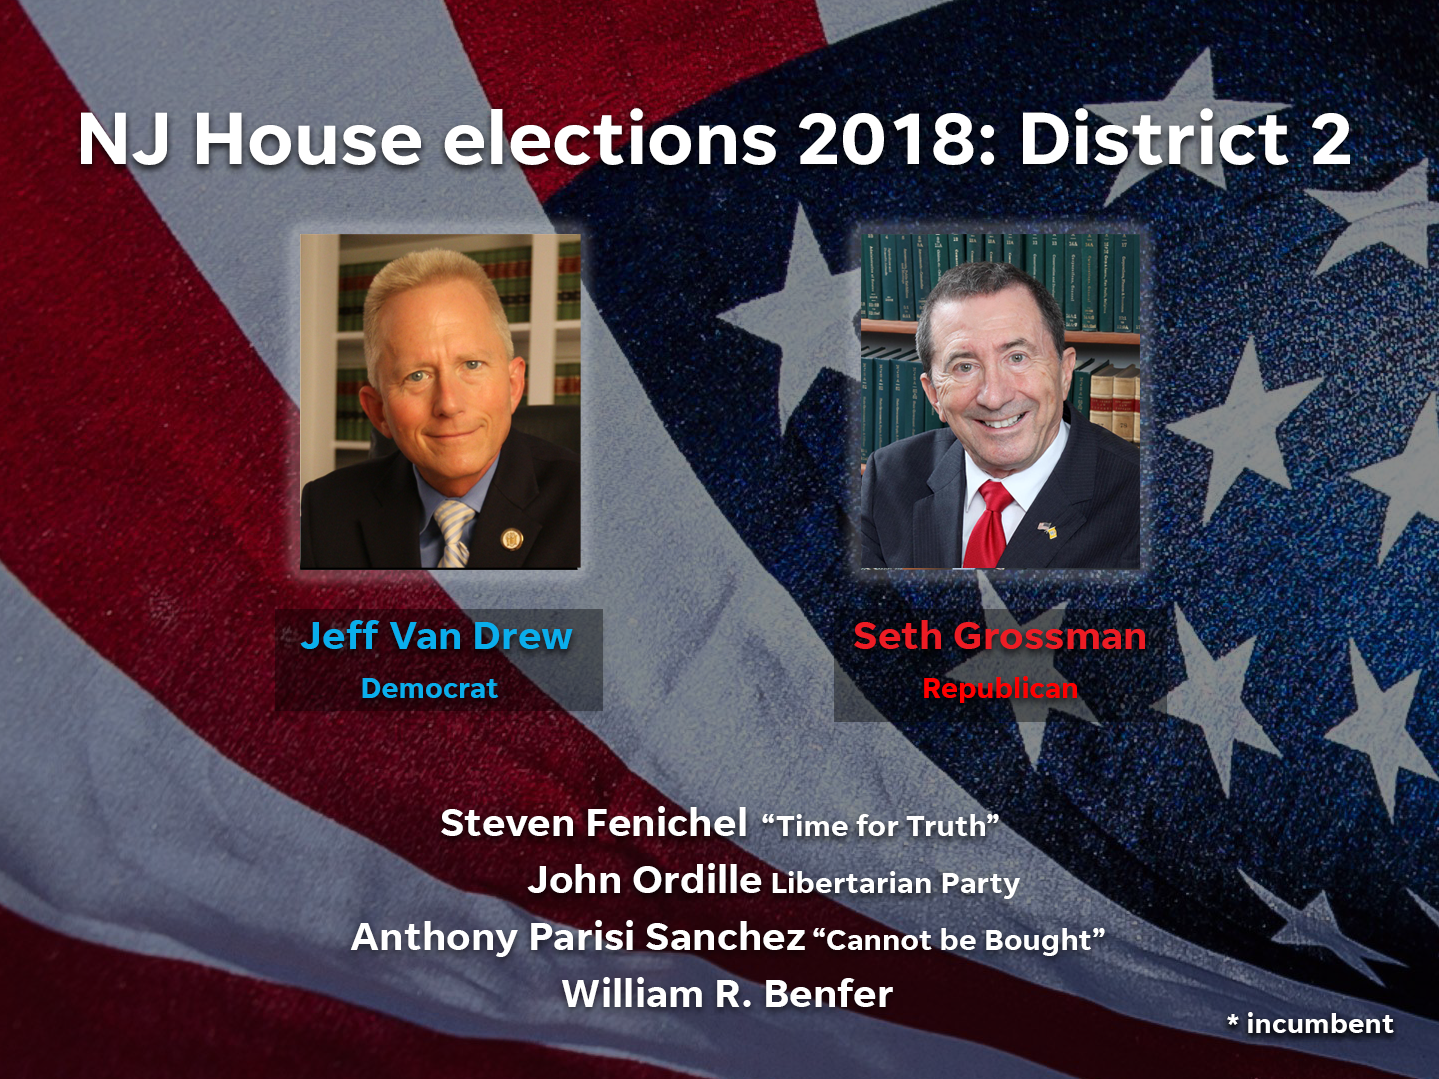 Jeff Van Drew (D) and Seth Grossman (R) are among the candidates running in District 2 in the 2018 NJ House elections.